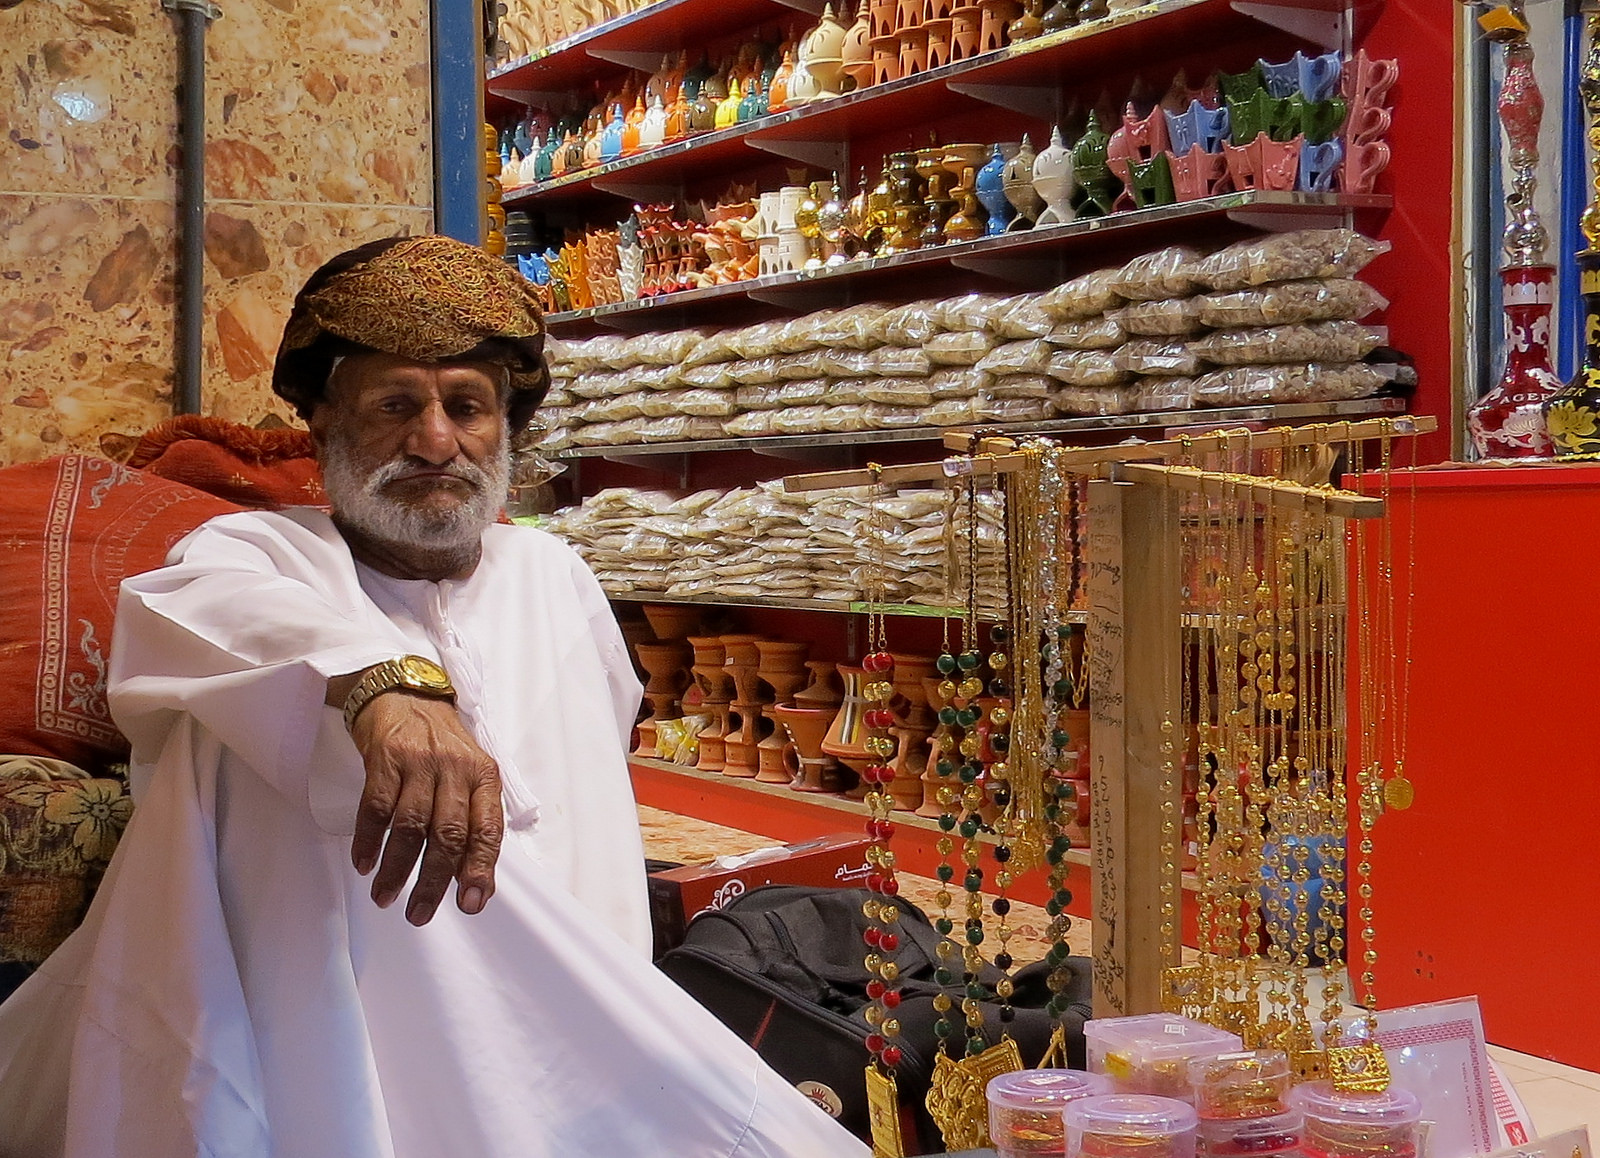 Muttrah Souq - one of the oldest market in the Arab world